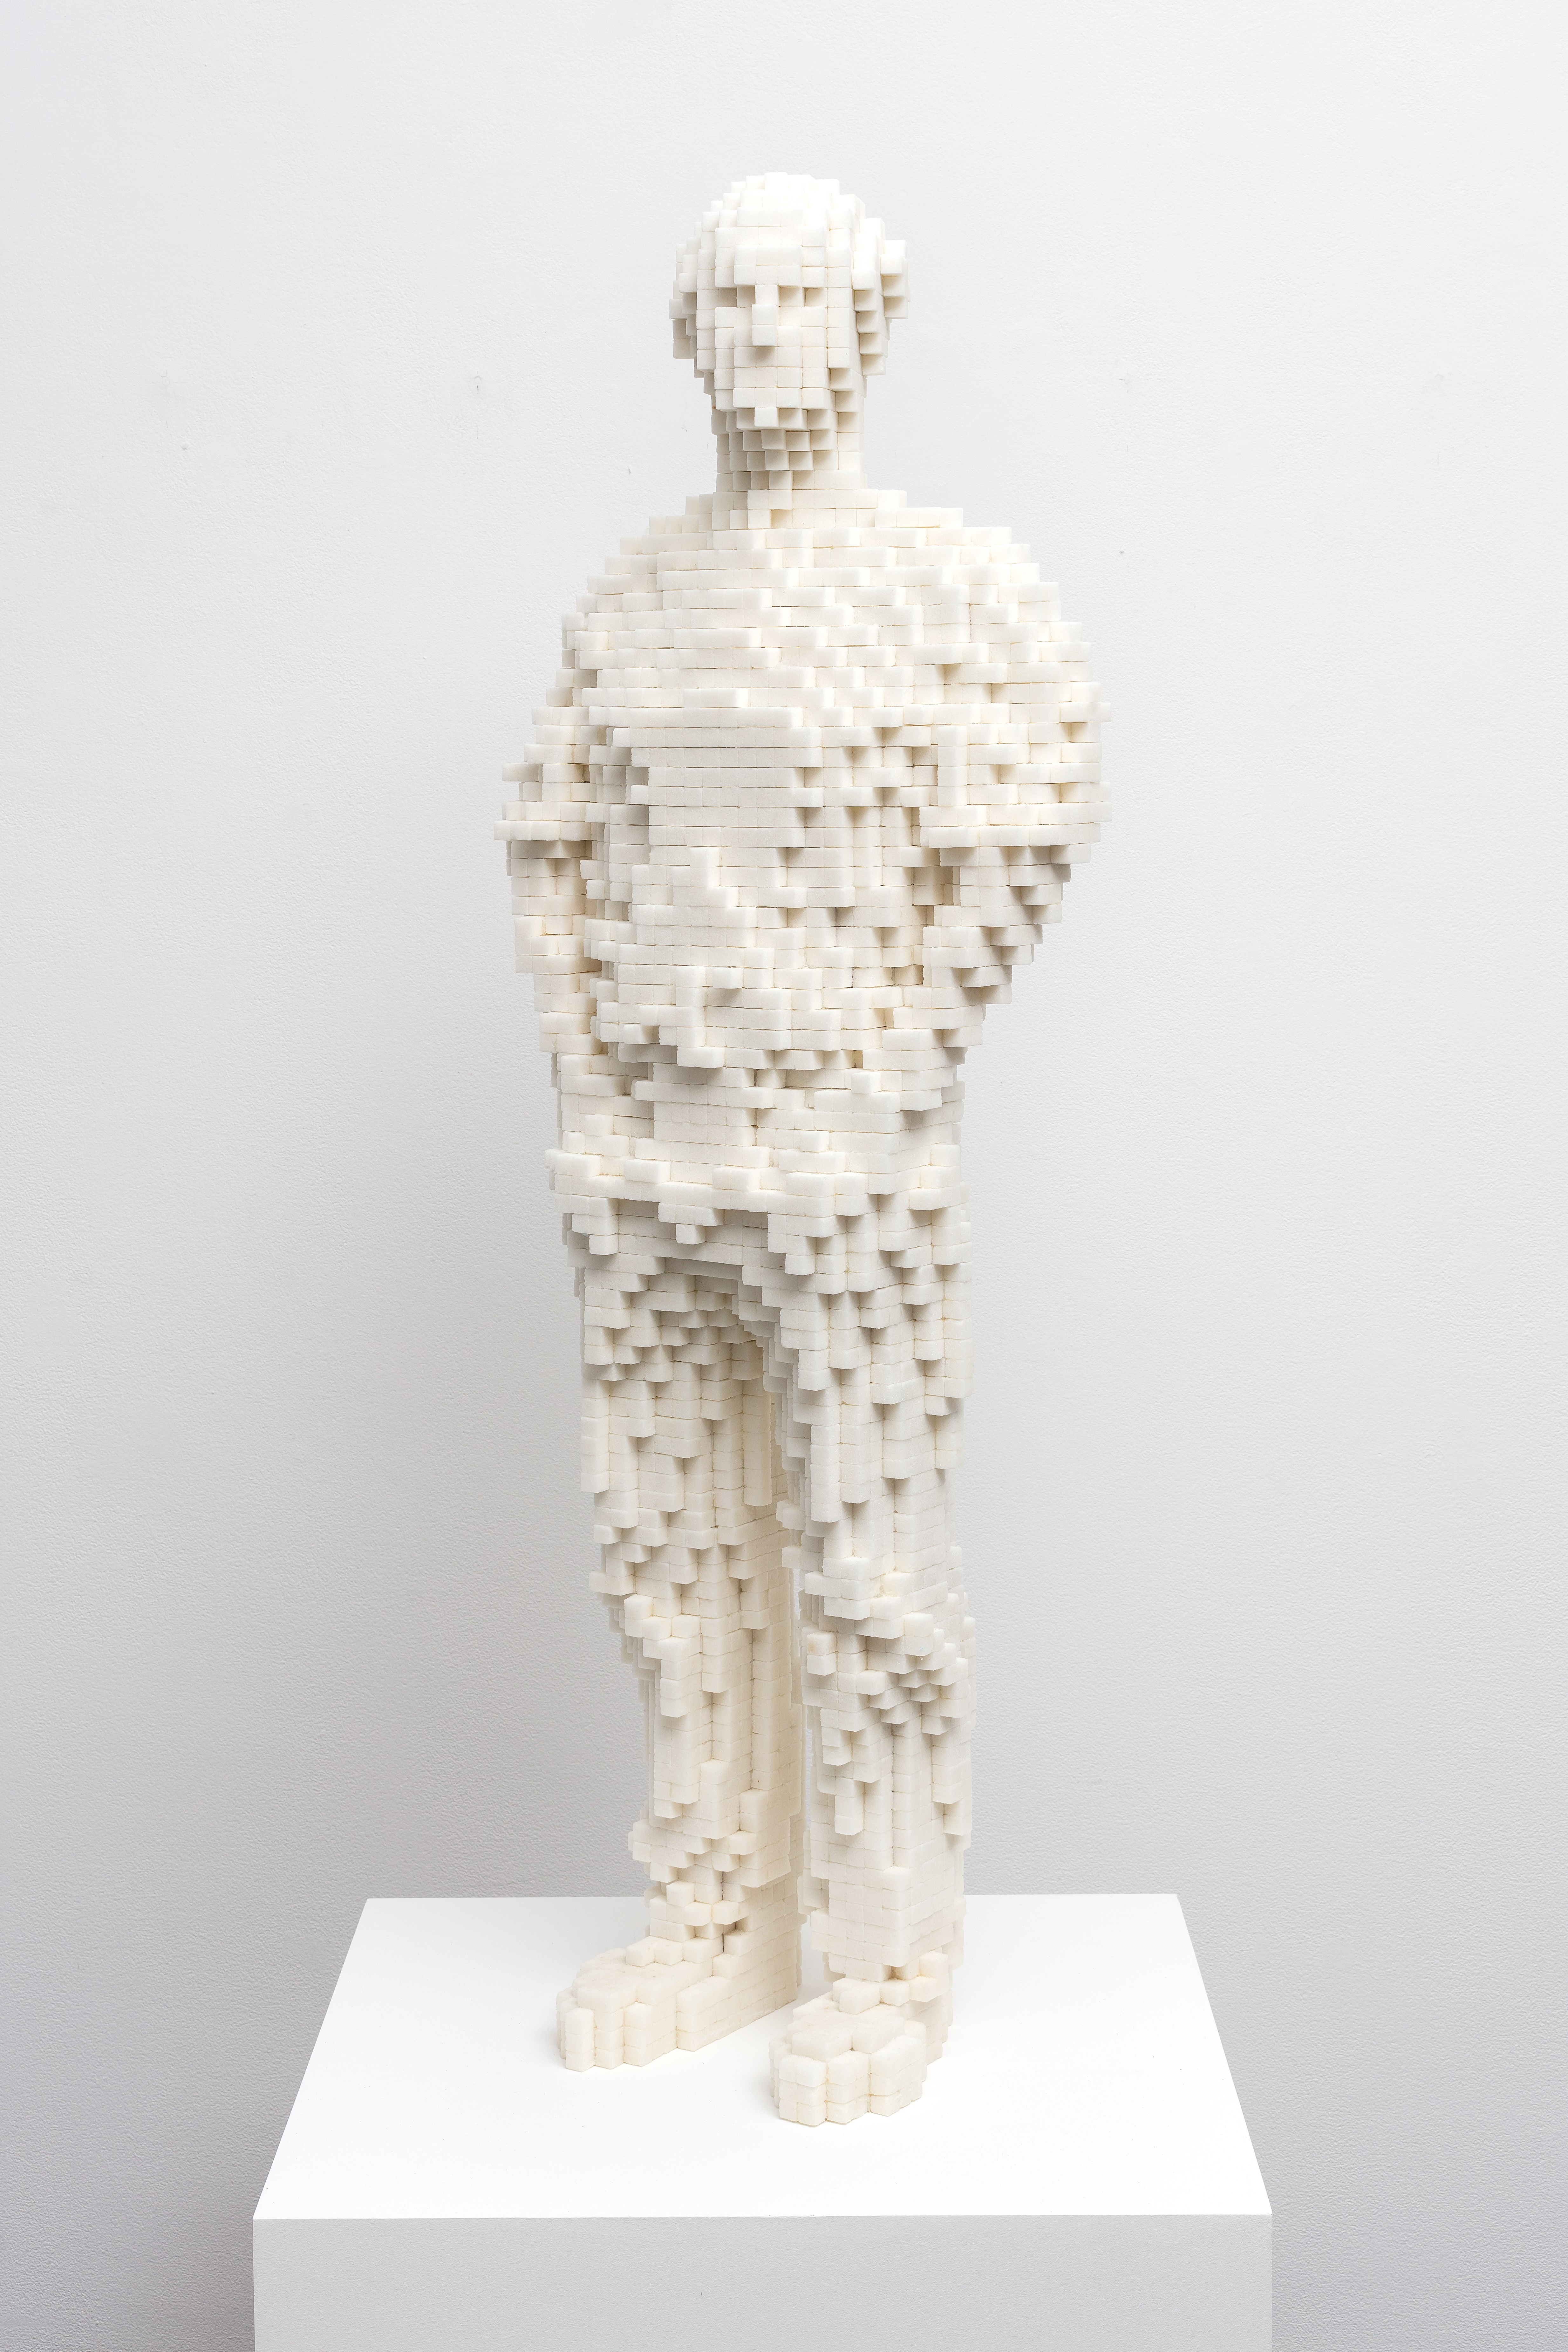 LAM museum acquires Tom Friedman's self-portrait in sugar cubes